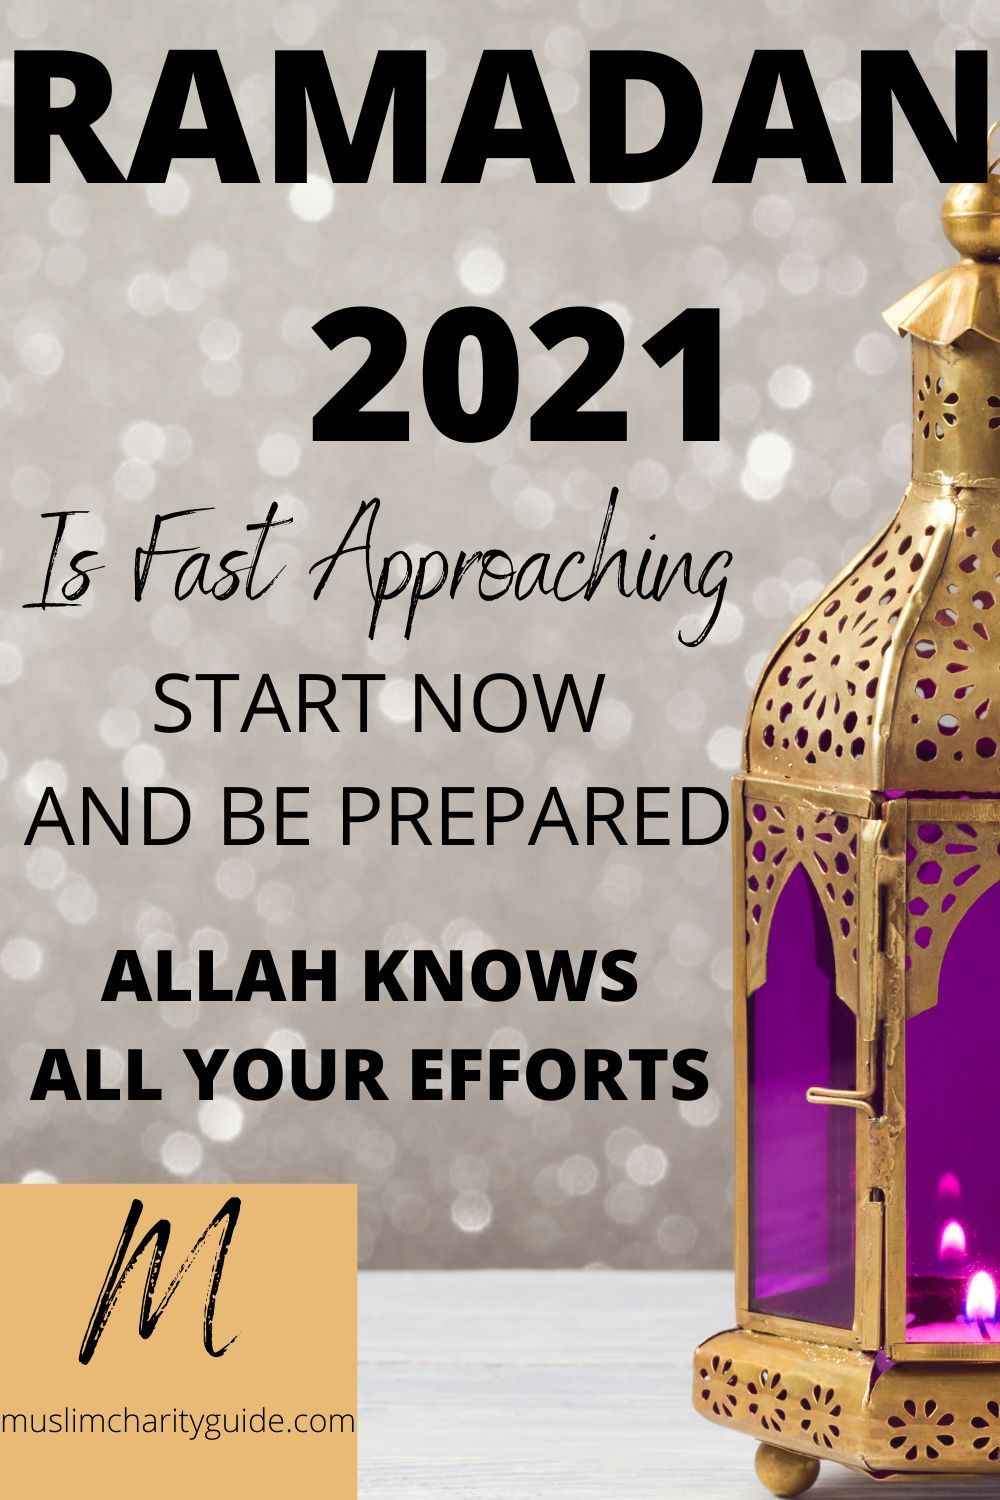 How To Prepare For Ramadan 2021 In 2021 Preparing For Ramadan Ramadan Preparation